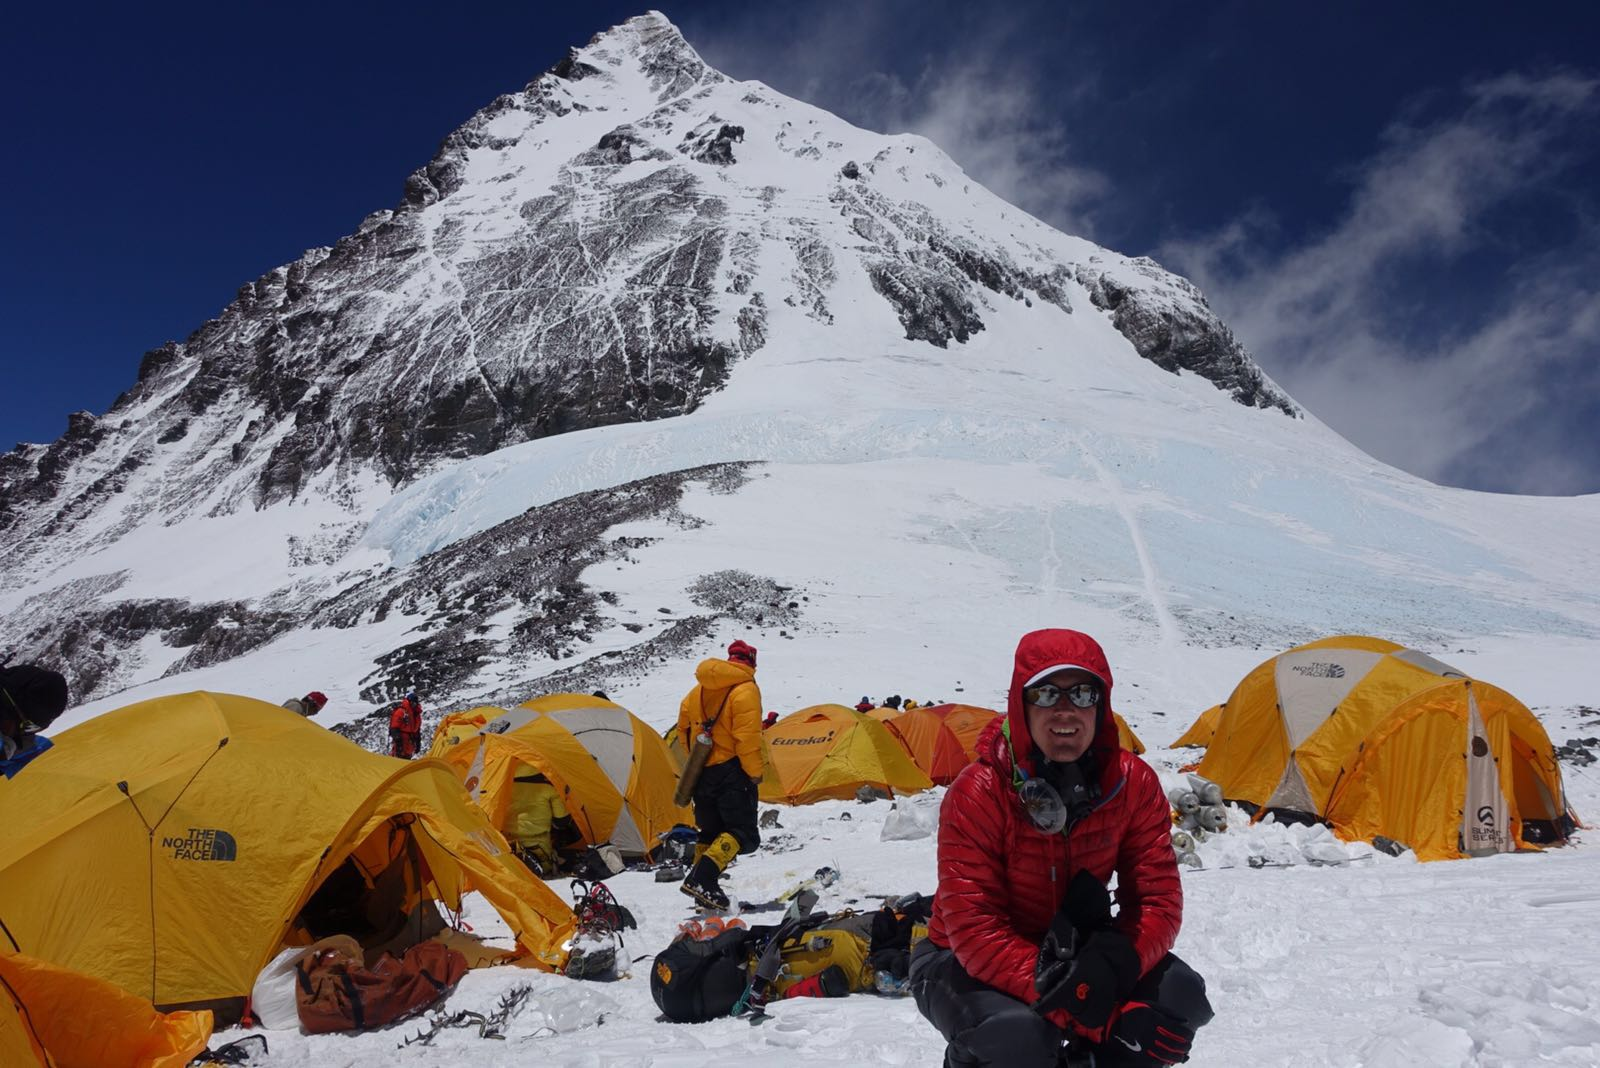 Colin at Camp 4! Ready to reach the Everest summit.